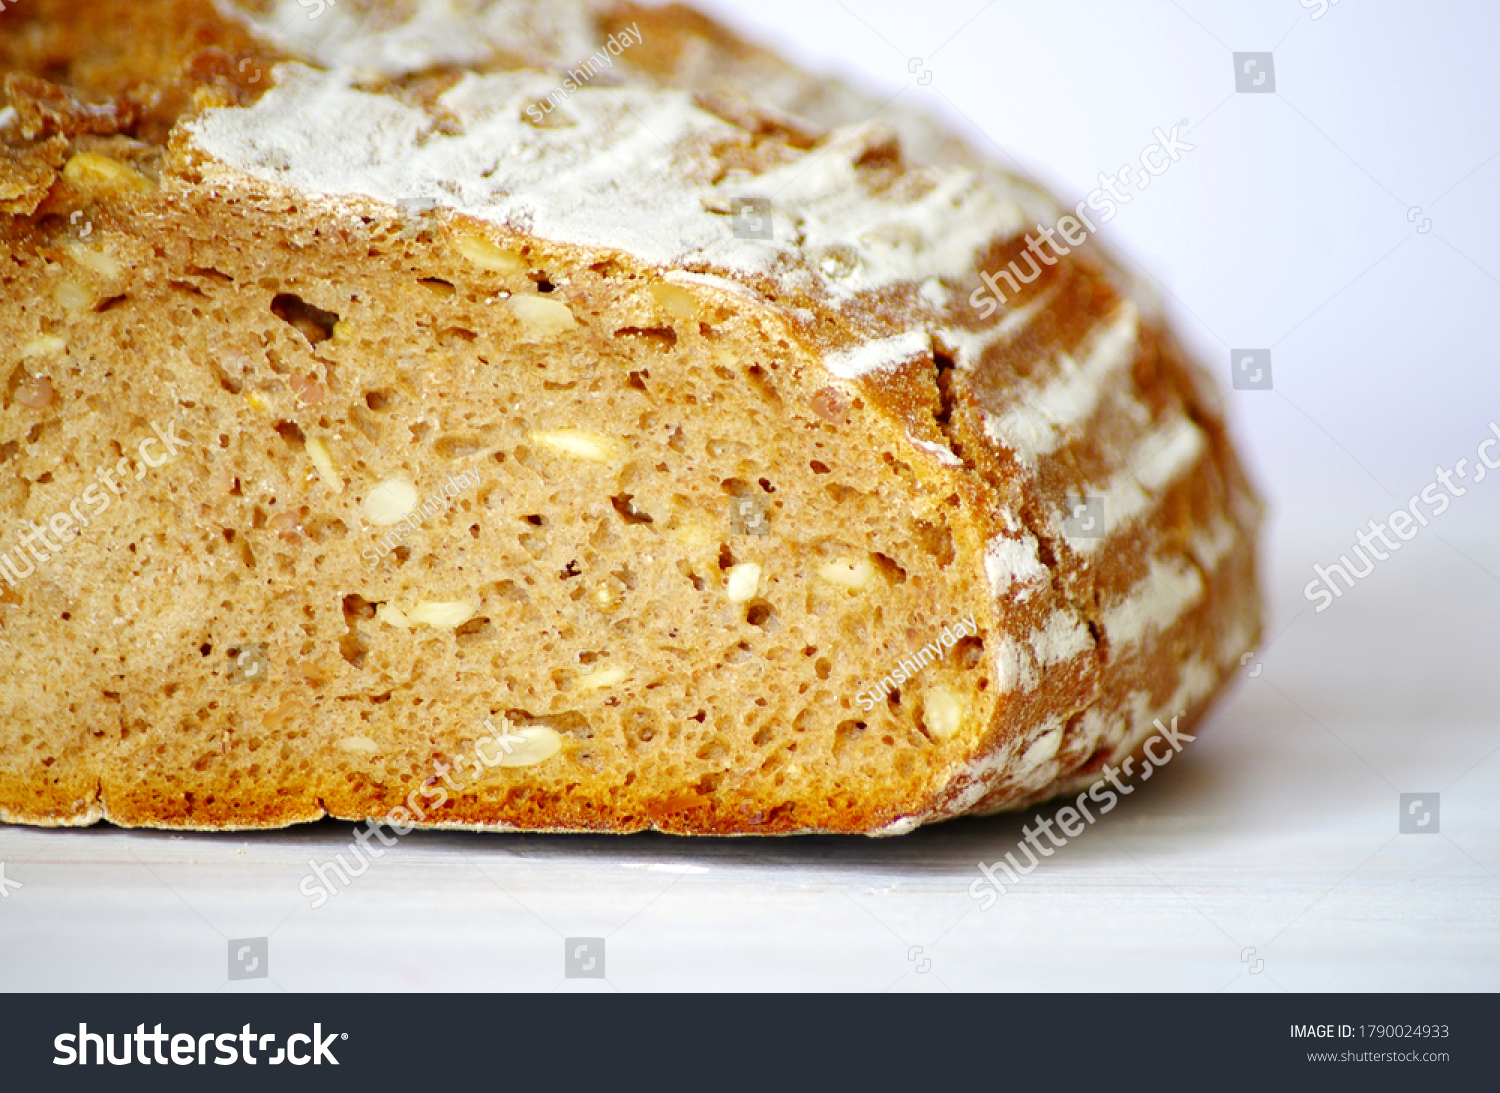 stock-photo-fresh-german-bread-close-up-